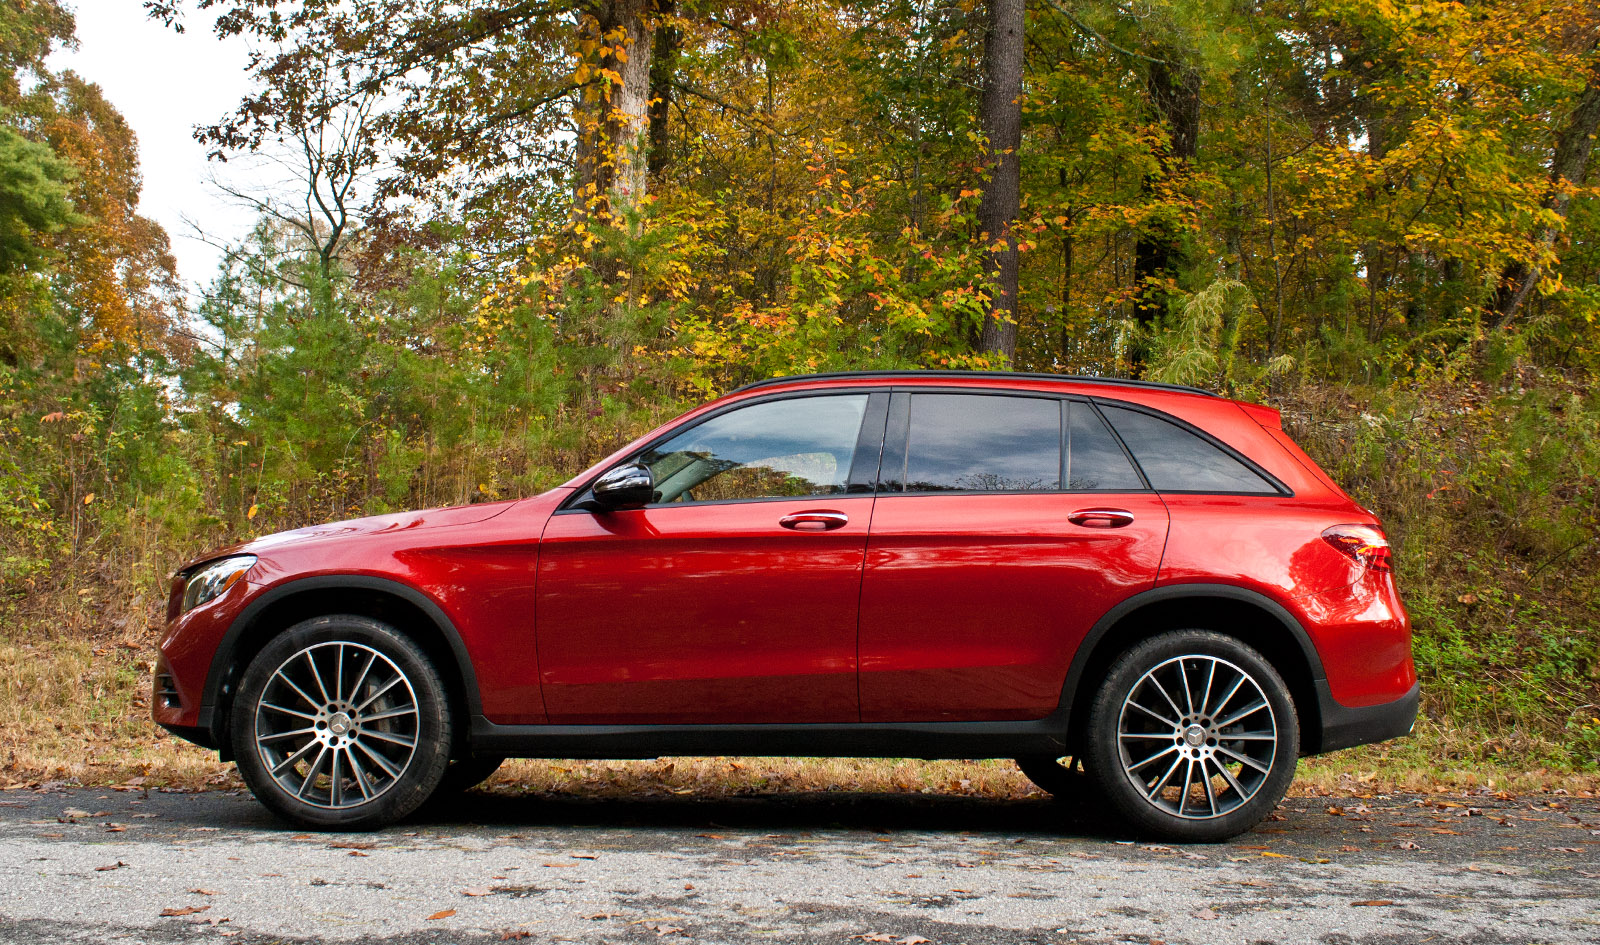 2016 mercedes benz glc 300 4matic review news for What does 4matic mean on the mercedes benz